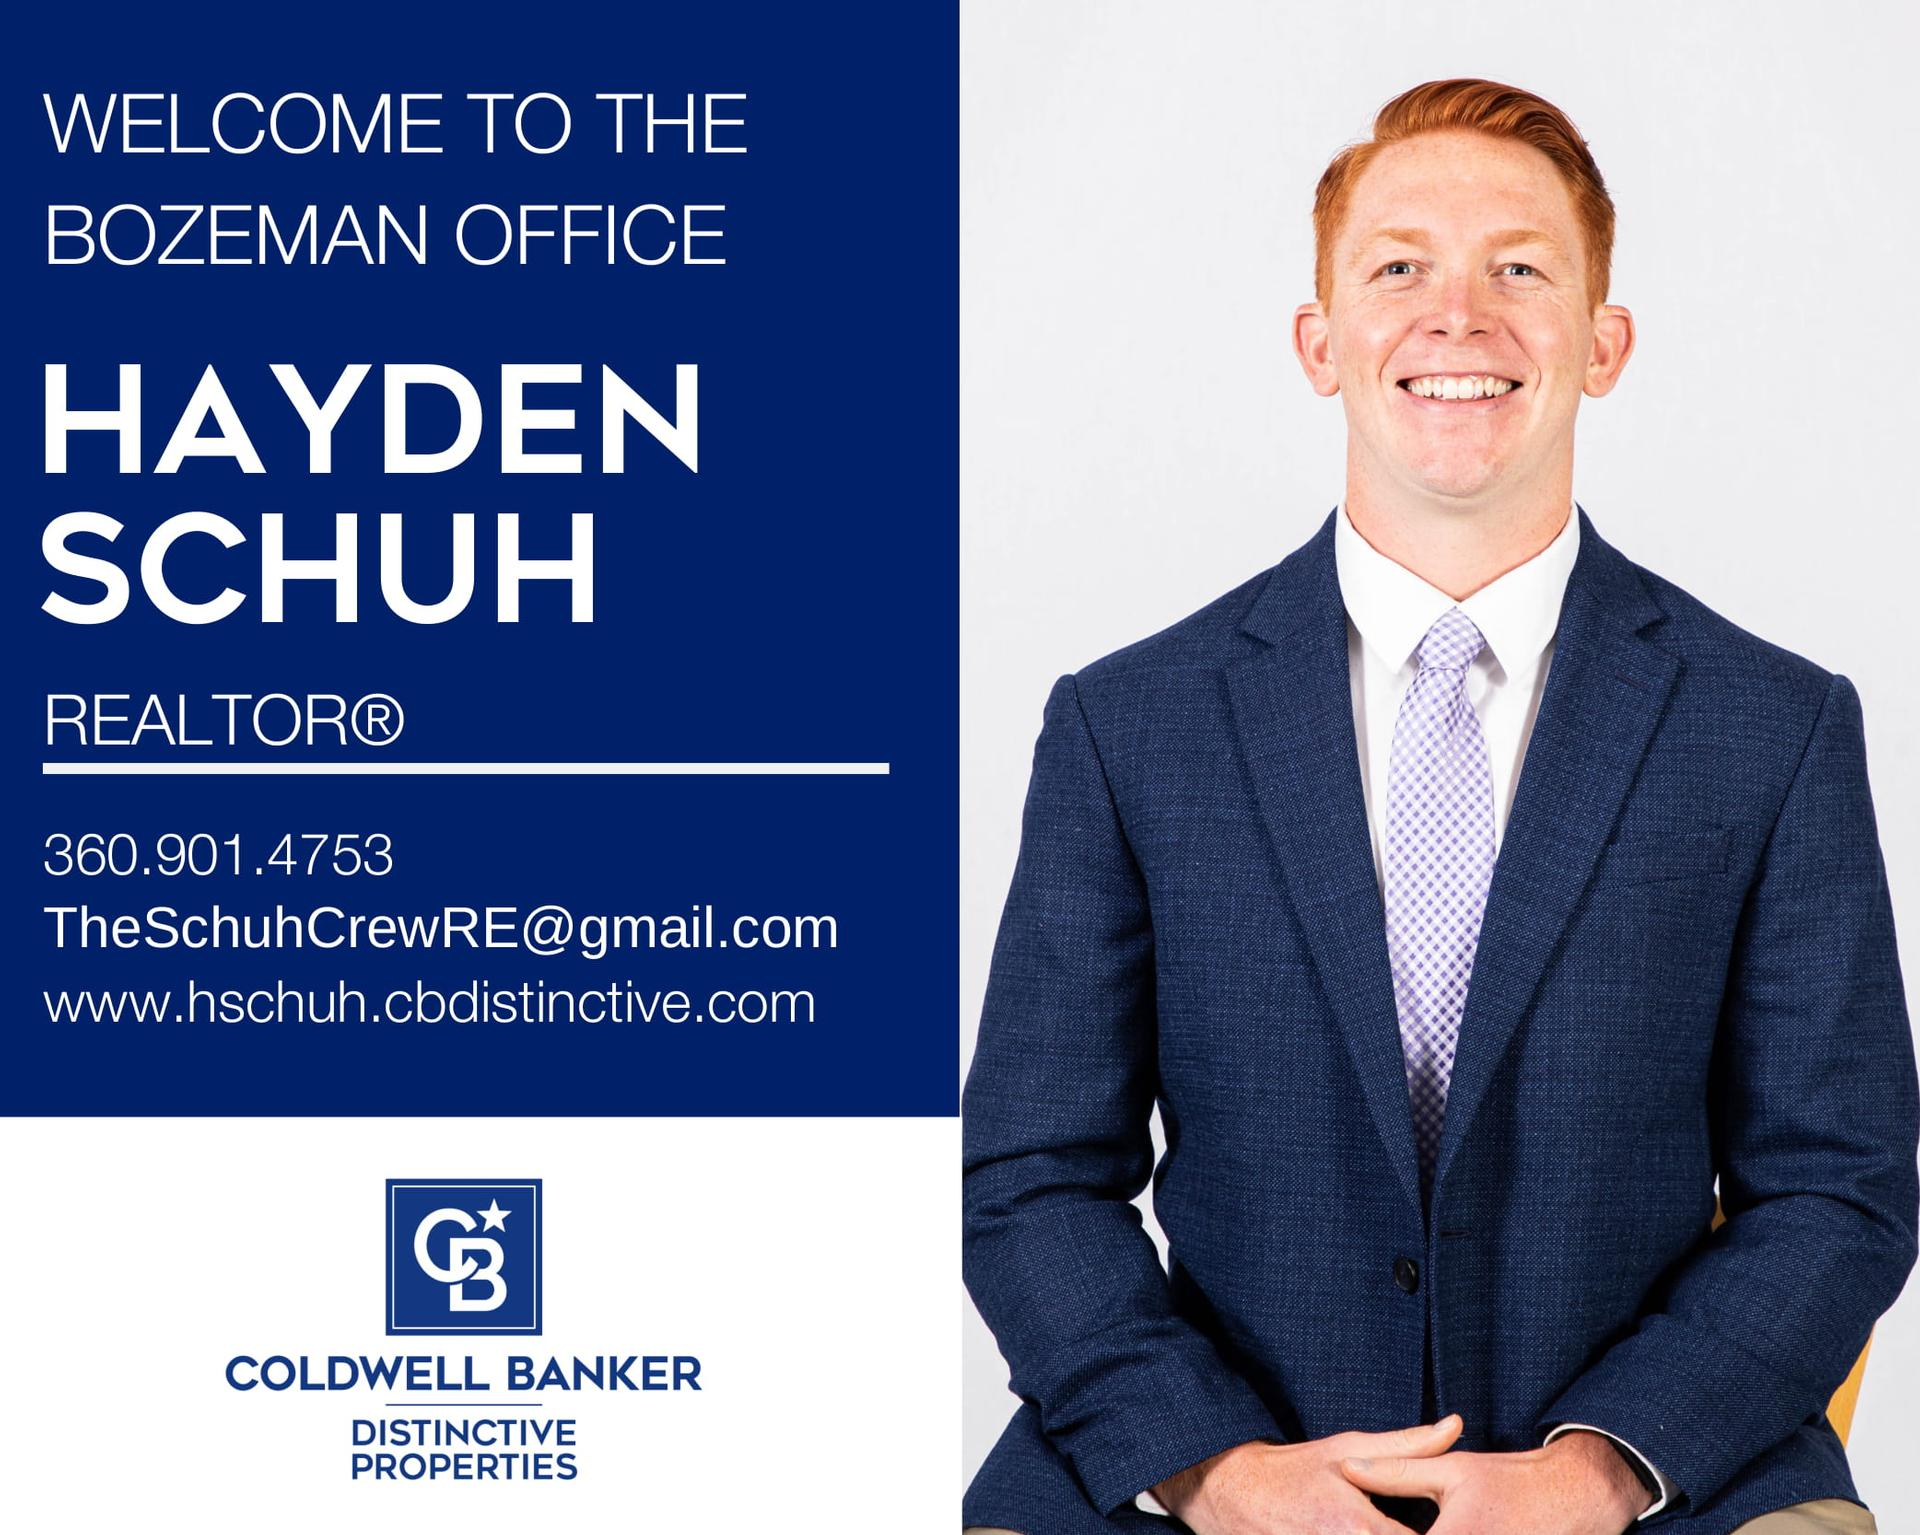 We are excited to announce that Hayden Schuh has joined Coldwell Banker Distinctive Properties! Main Photo